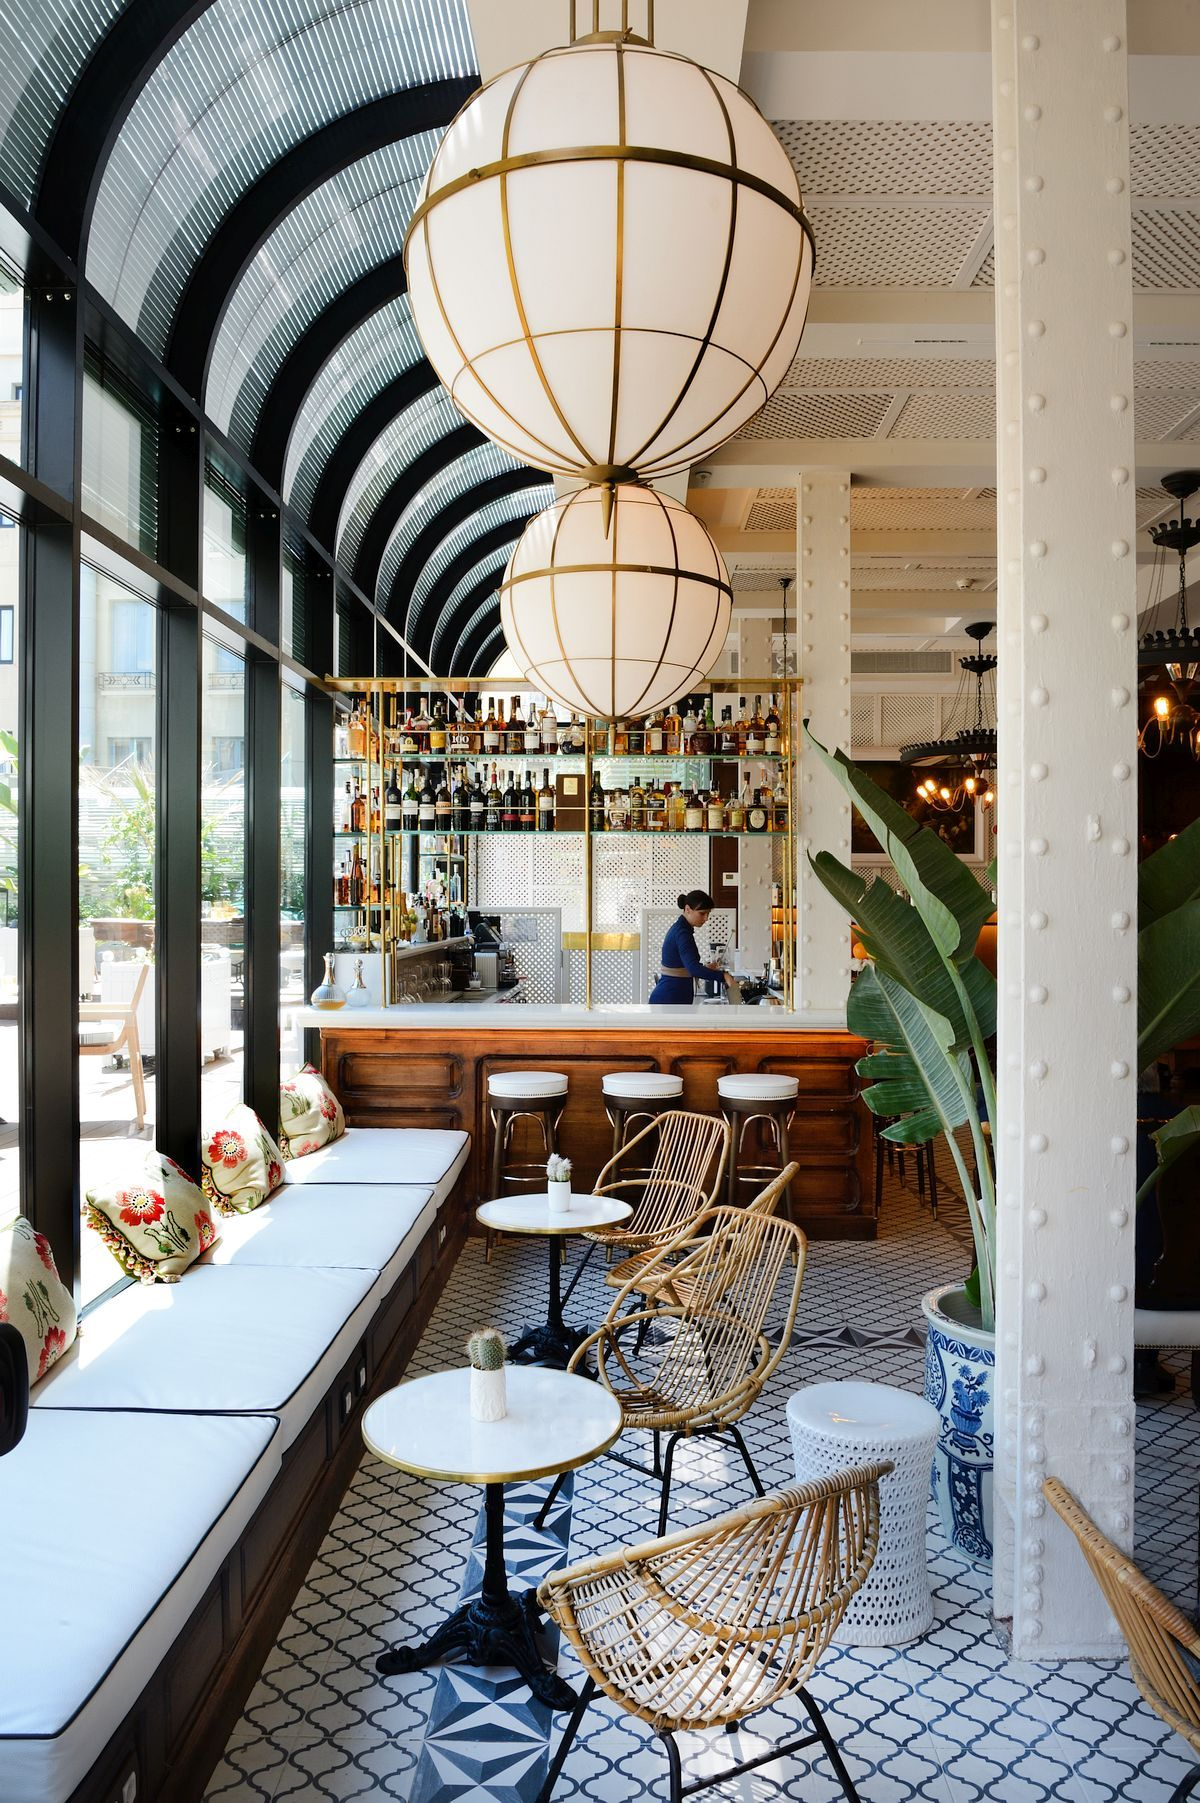 Cotton House Hotel in Barcelona combines beautiful